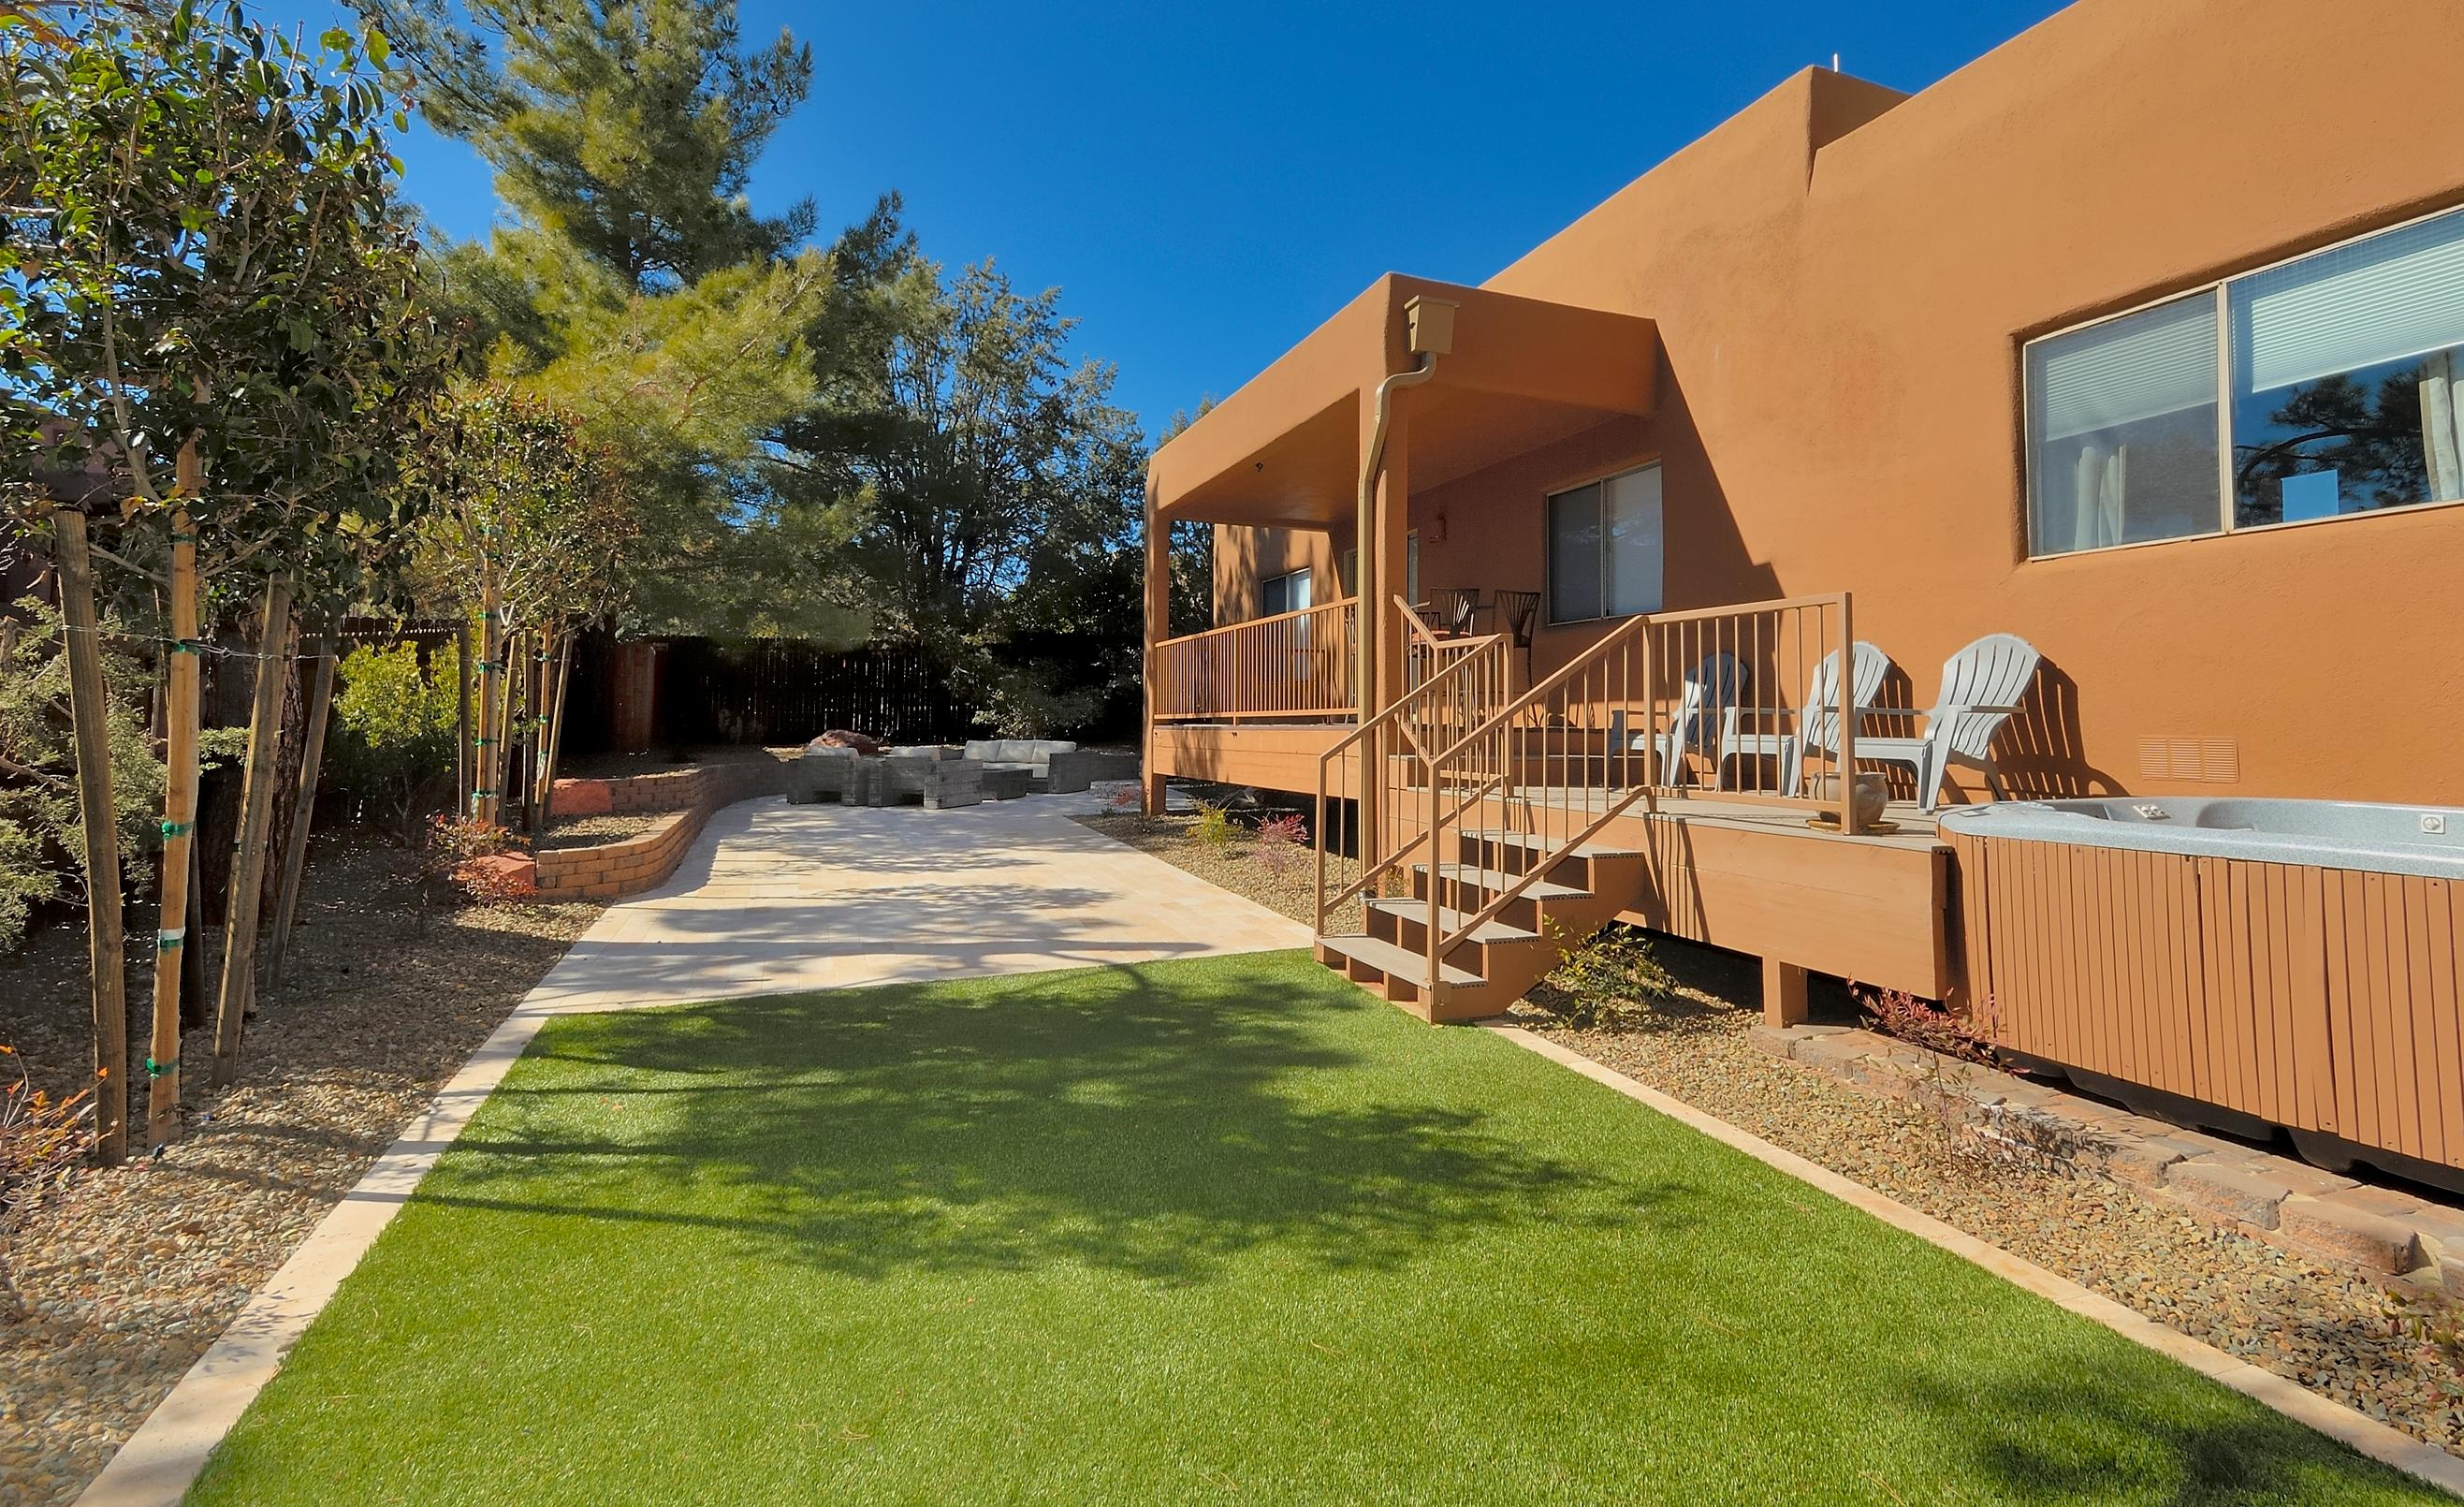 SEDONA with SPACIOUS BACKYARD FEATURING SPA & PET FRIENDLY